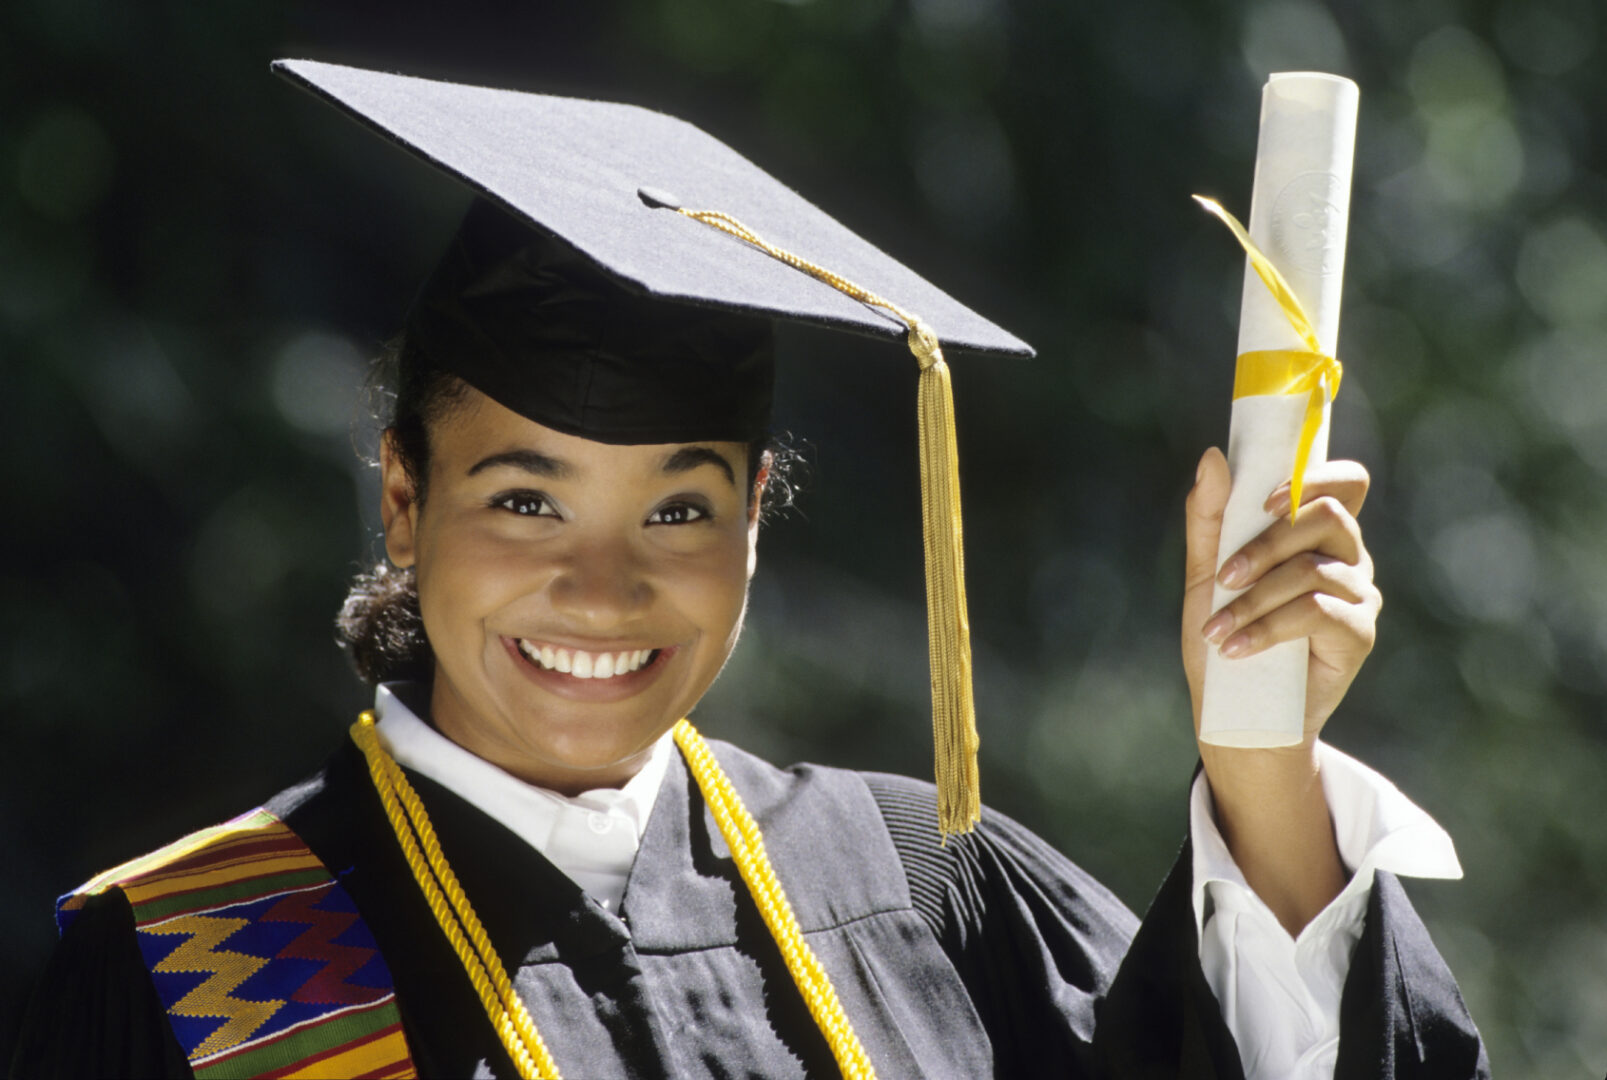 African American woman graduate wearing cap and gown holding up diploma